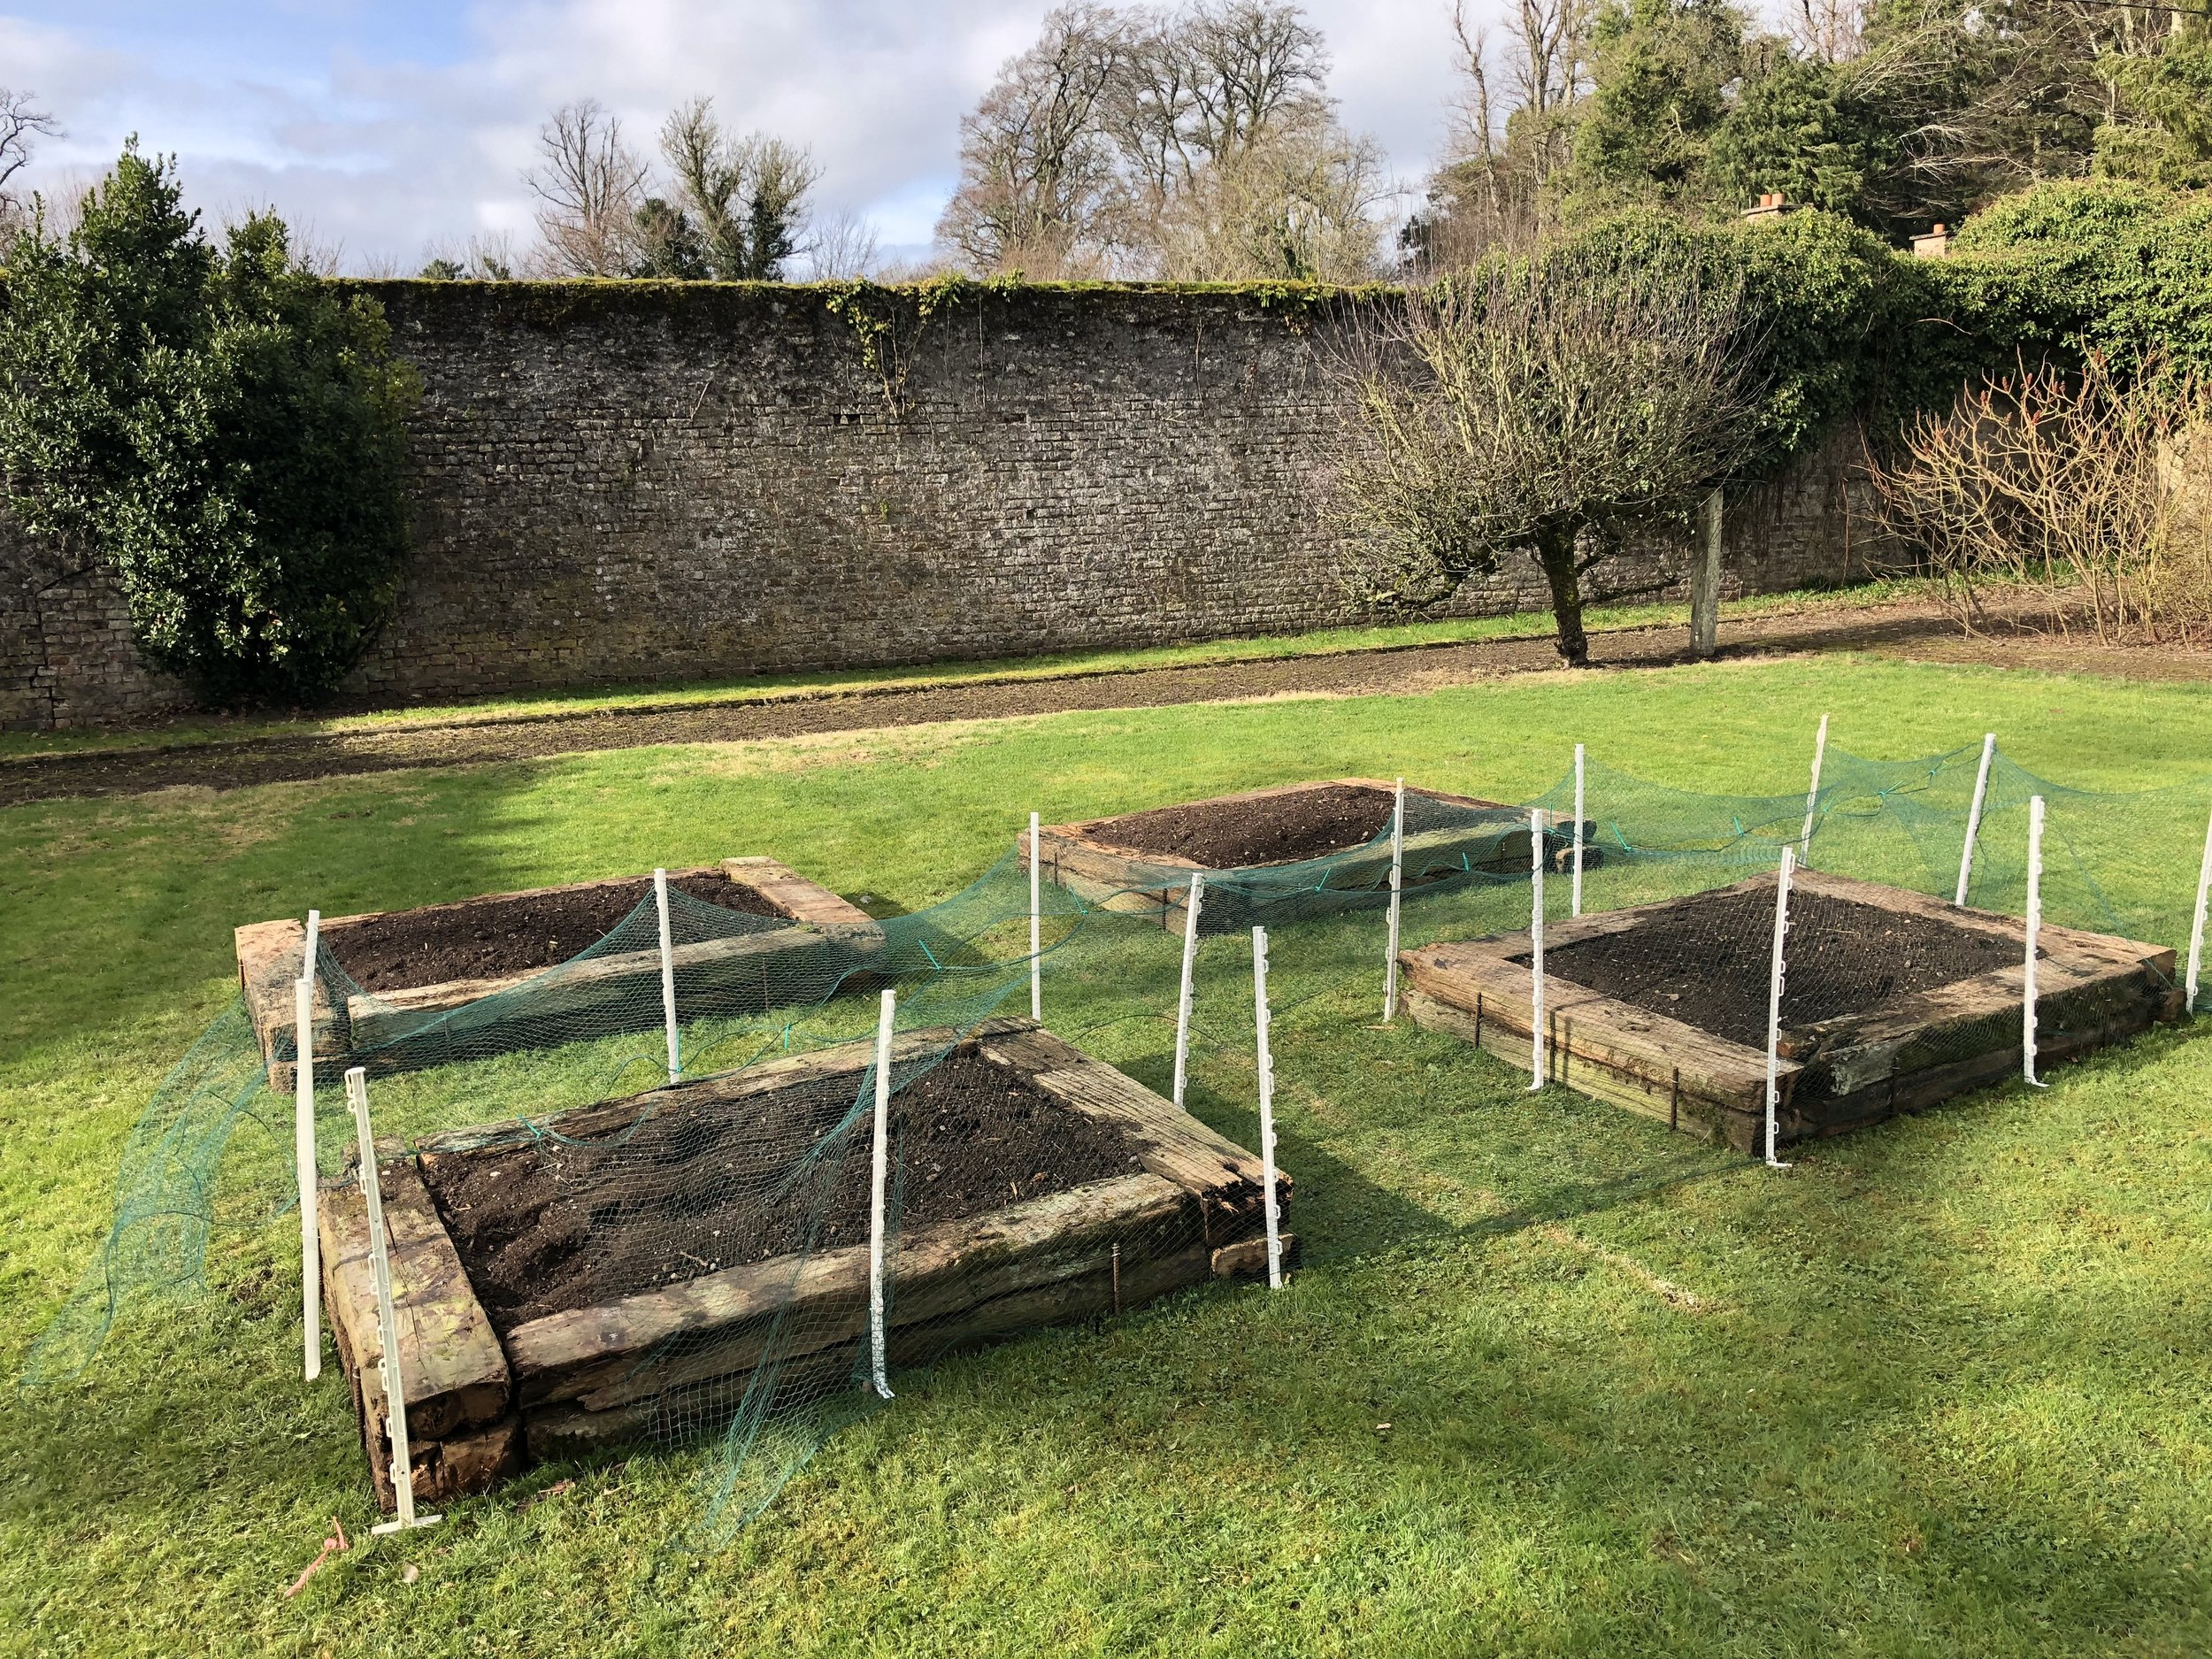 The raised beds -